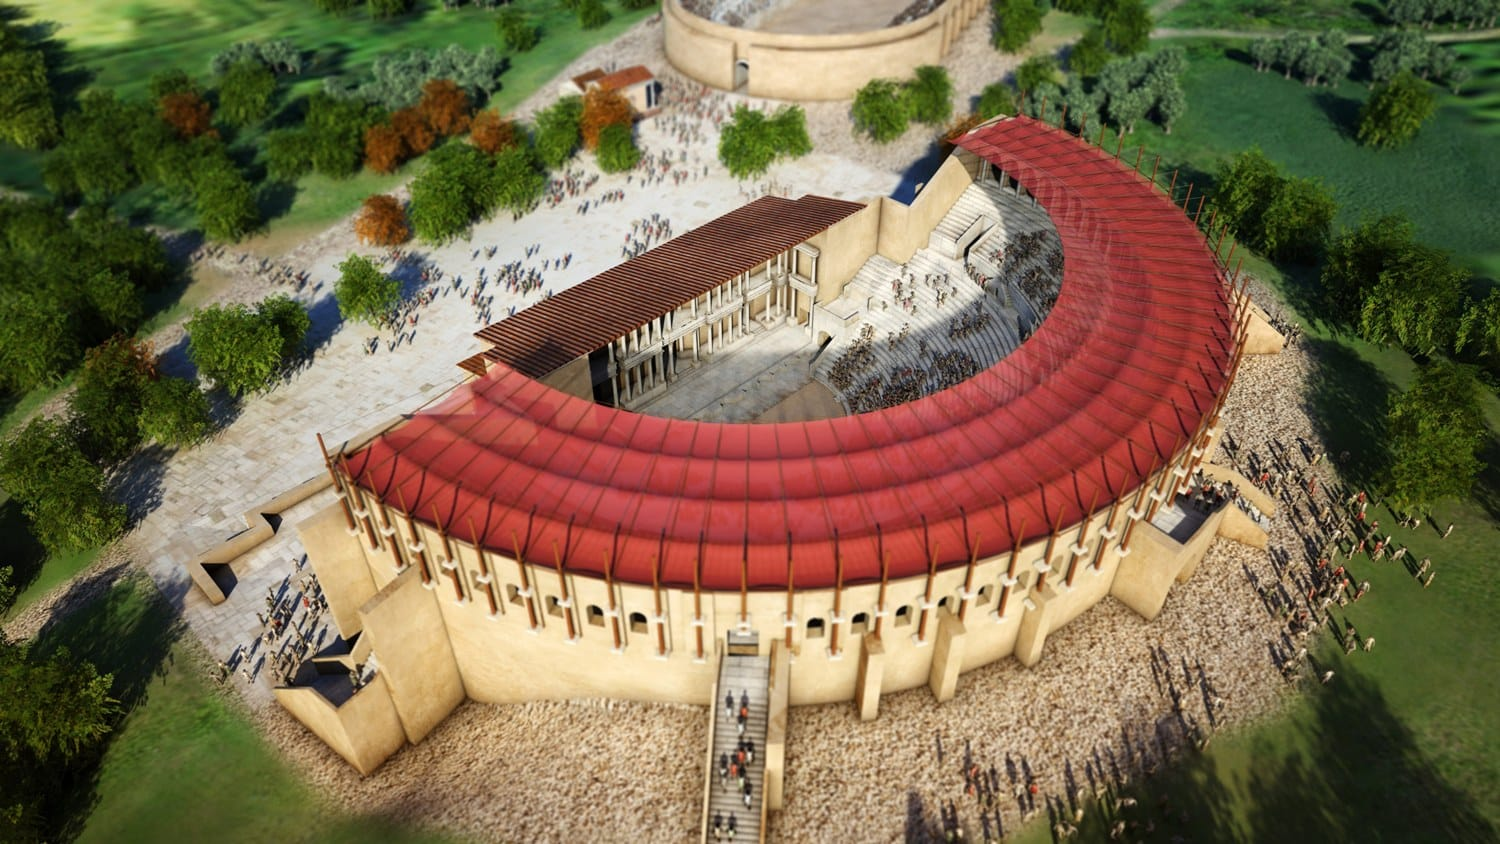 Virtual reconstruction of the Theater